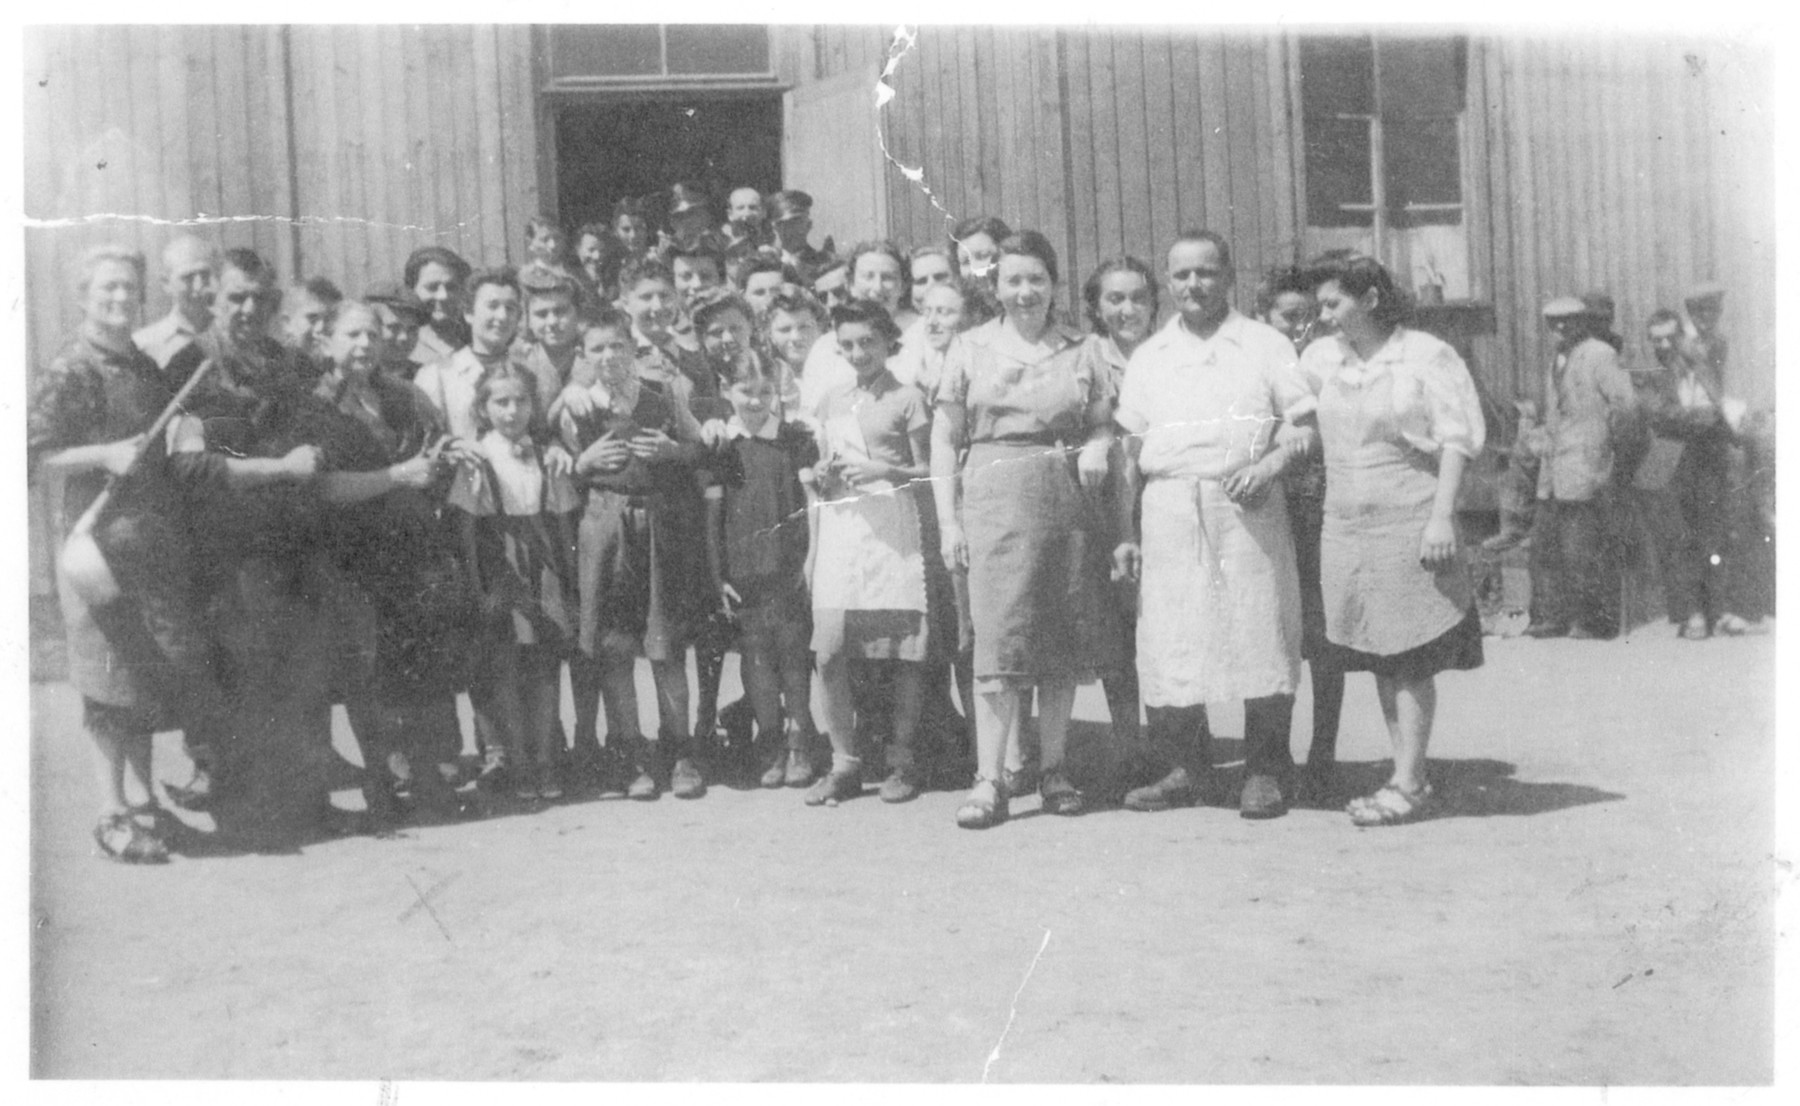 Group portrait of men, women and children of the Prokocim labor camp in Krakow.  Helen Ungar is standing in the fron row.  Her brother Adam is next to her.  The camp cook is standing second from the right.  To his left is Stefania's sister Lucia and to his right are Stefania and her sister Jula.